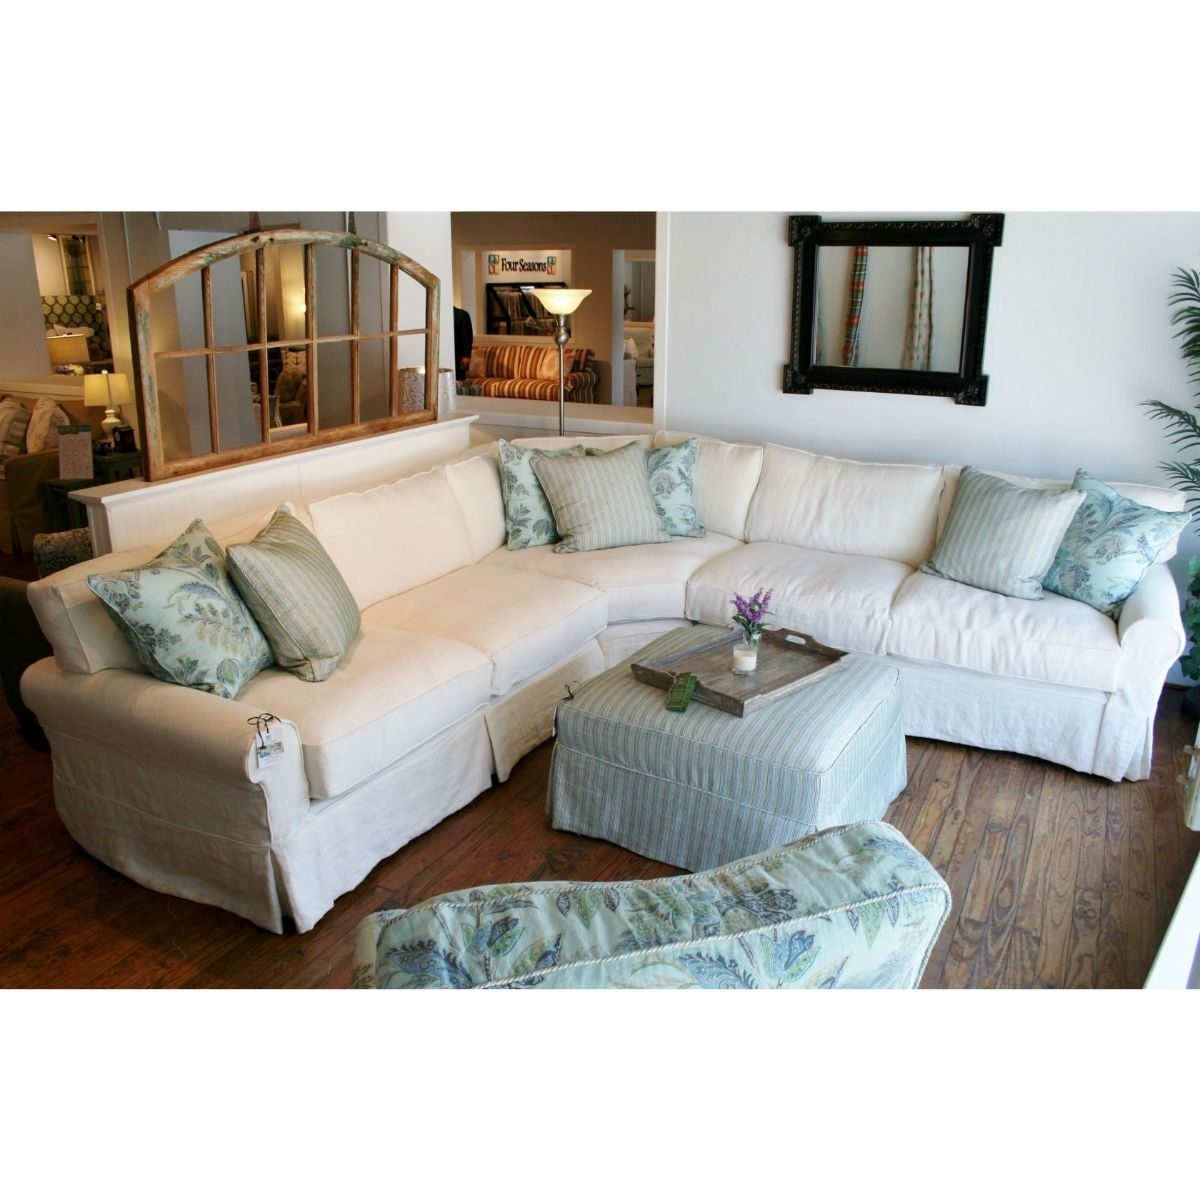 Slipcovered Sectional Sofa Boothbay (Daniel) 108X108 | Coastal With Regard To Tampa Sectional Sofas (View 7 of 10)